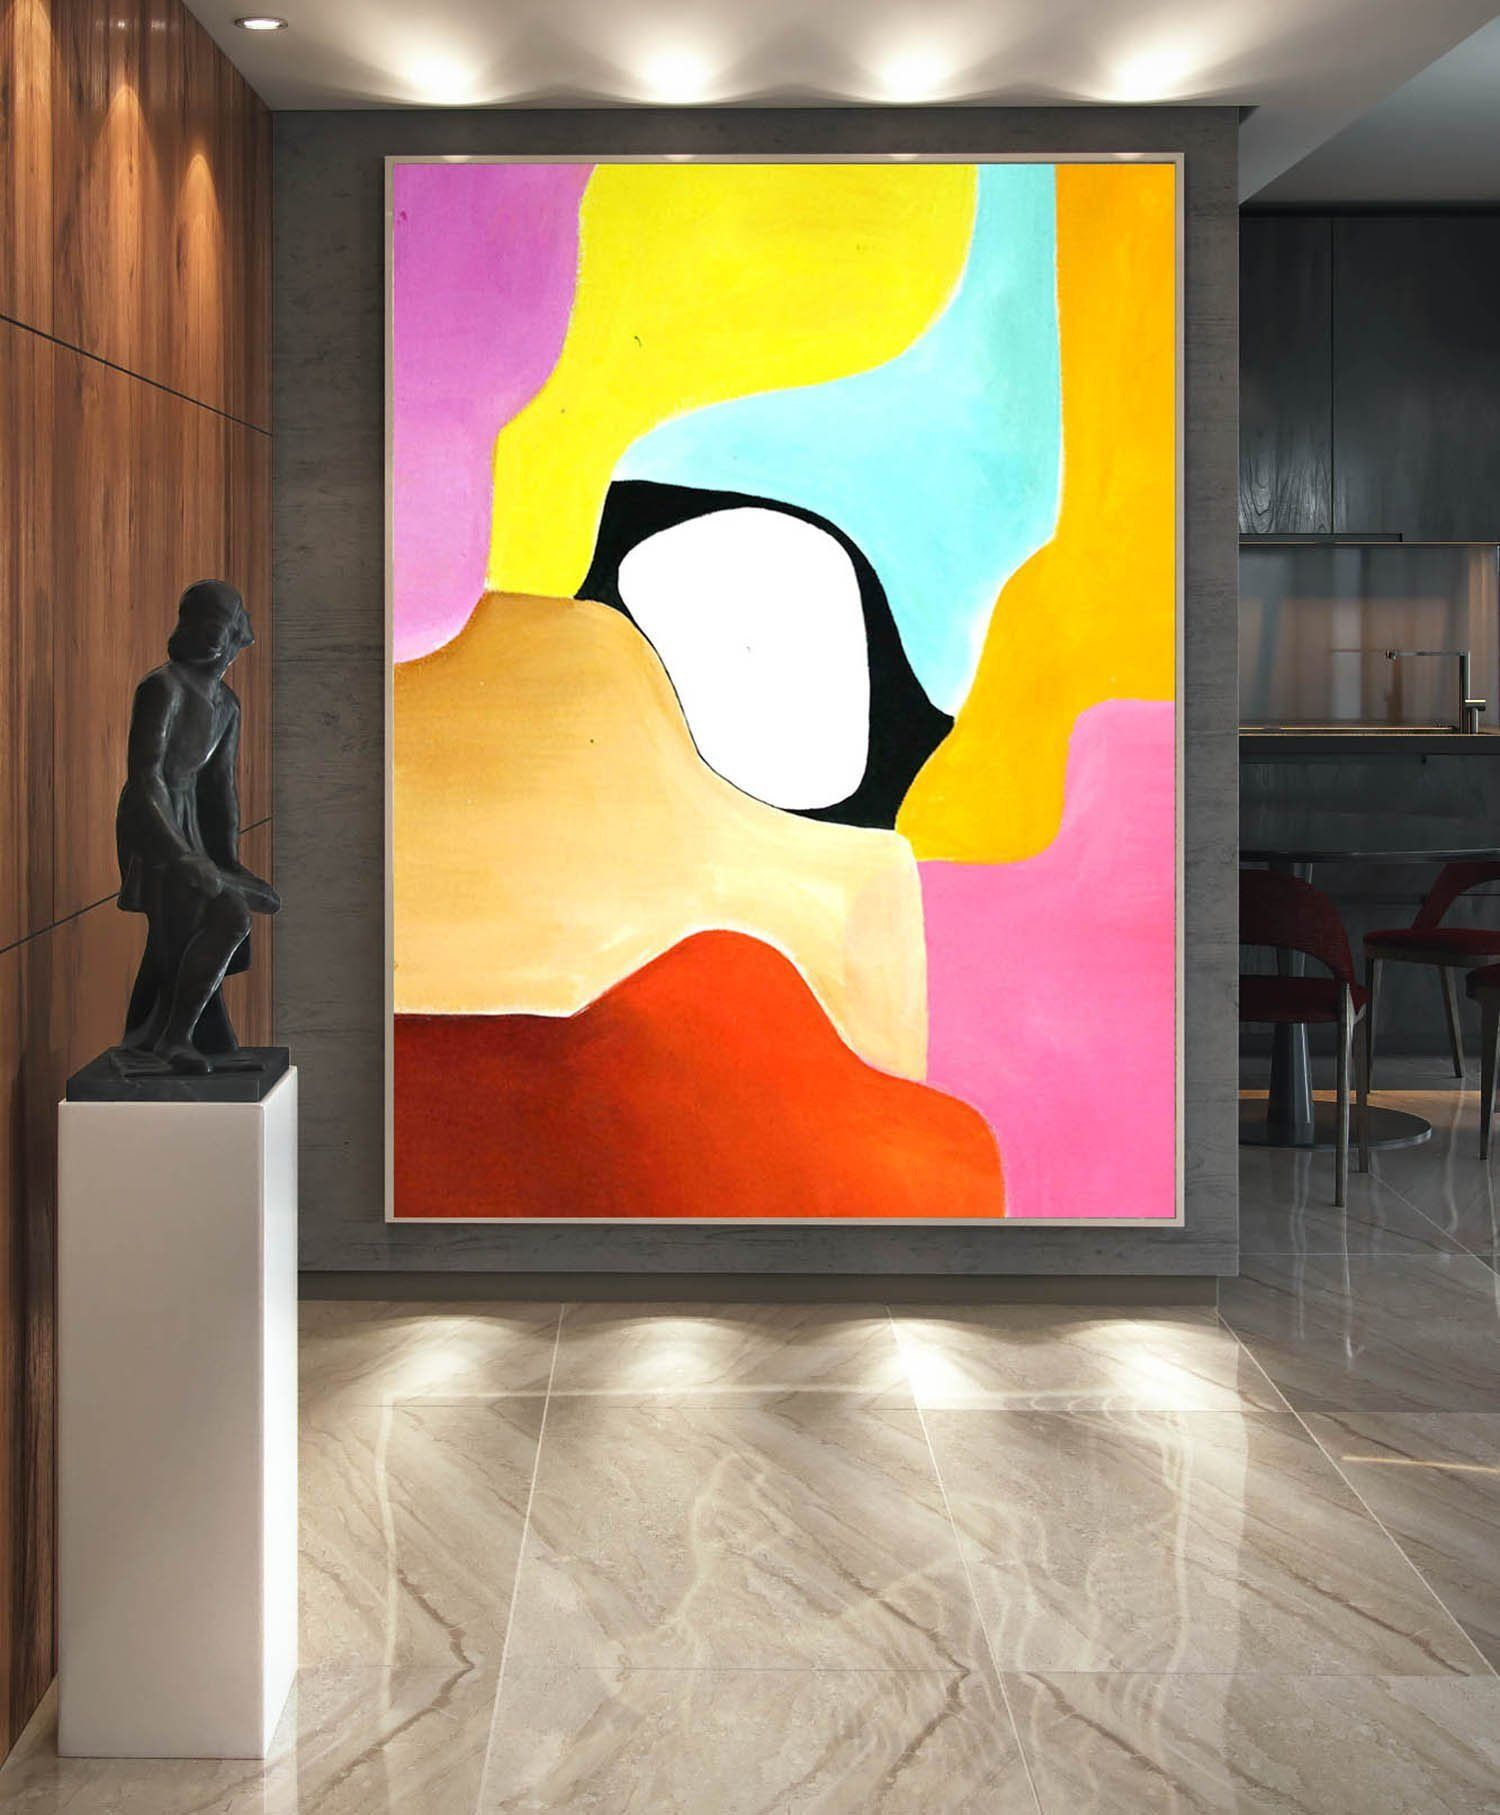 Abstract Painting On Canvas – Extra Large Wall Art, Contemporary Art In Most Popular Large Modern Industrial Wall Decor (View 2 of 20)